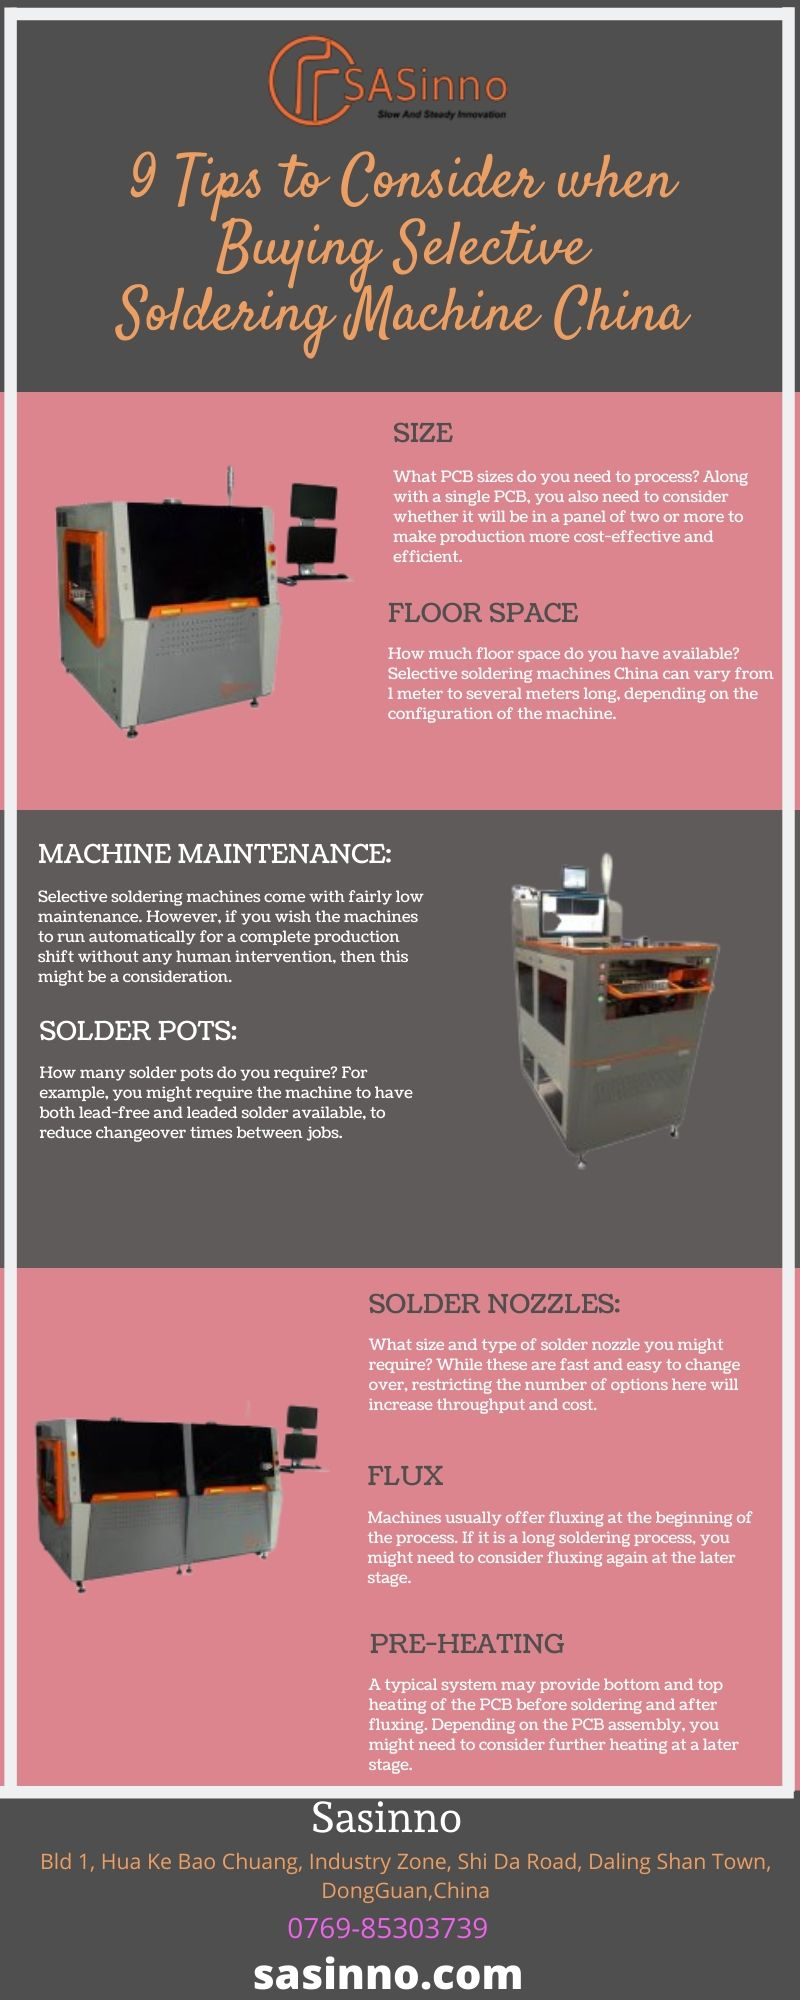 9 Tips to Consider when Buying Selective Soldering Machine China.jpg  by Sasinno